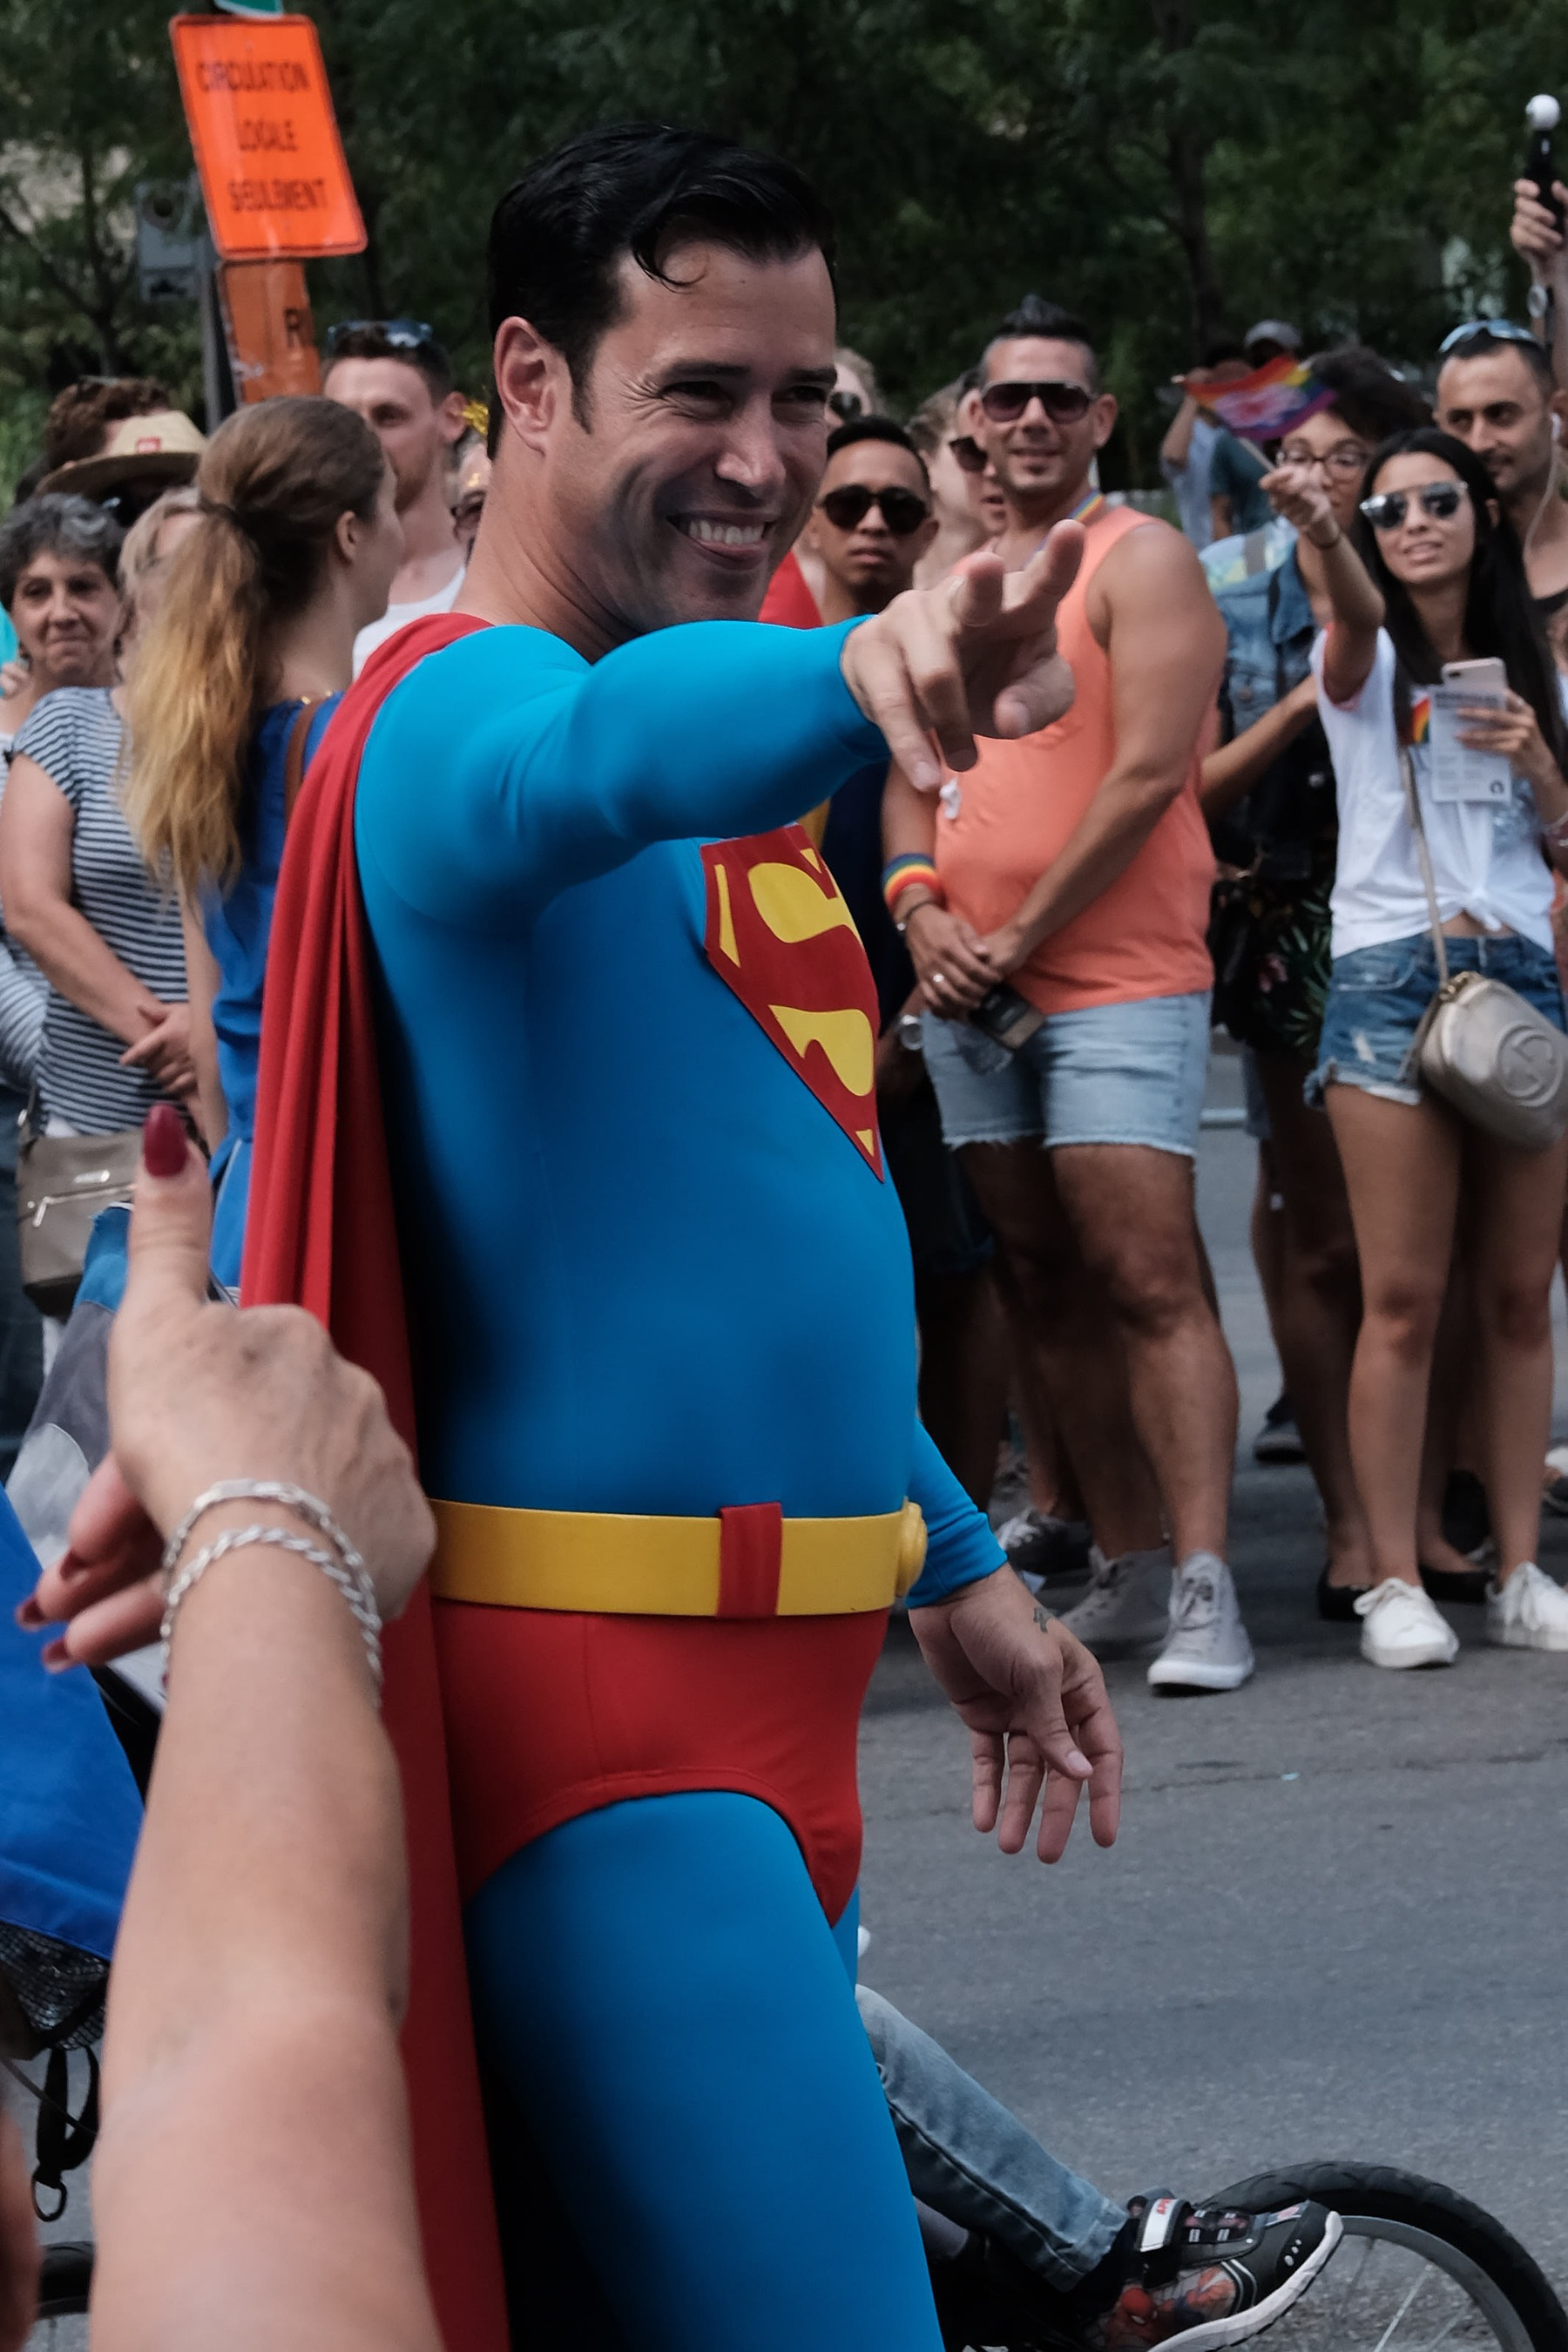 A man dressed up as superman waves at the crowd